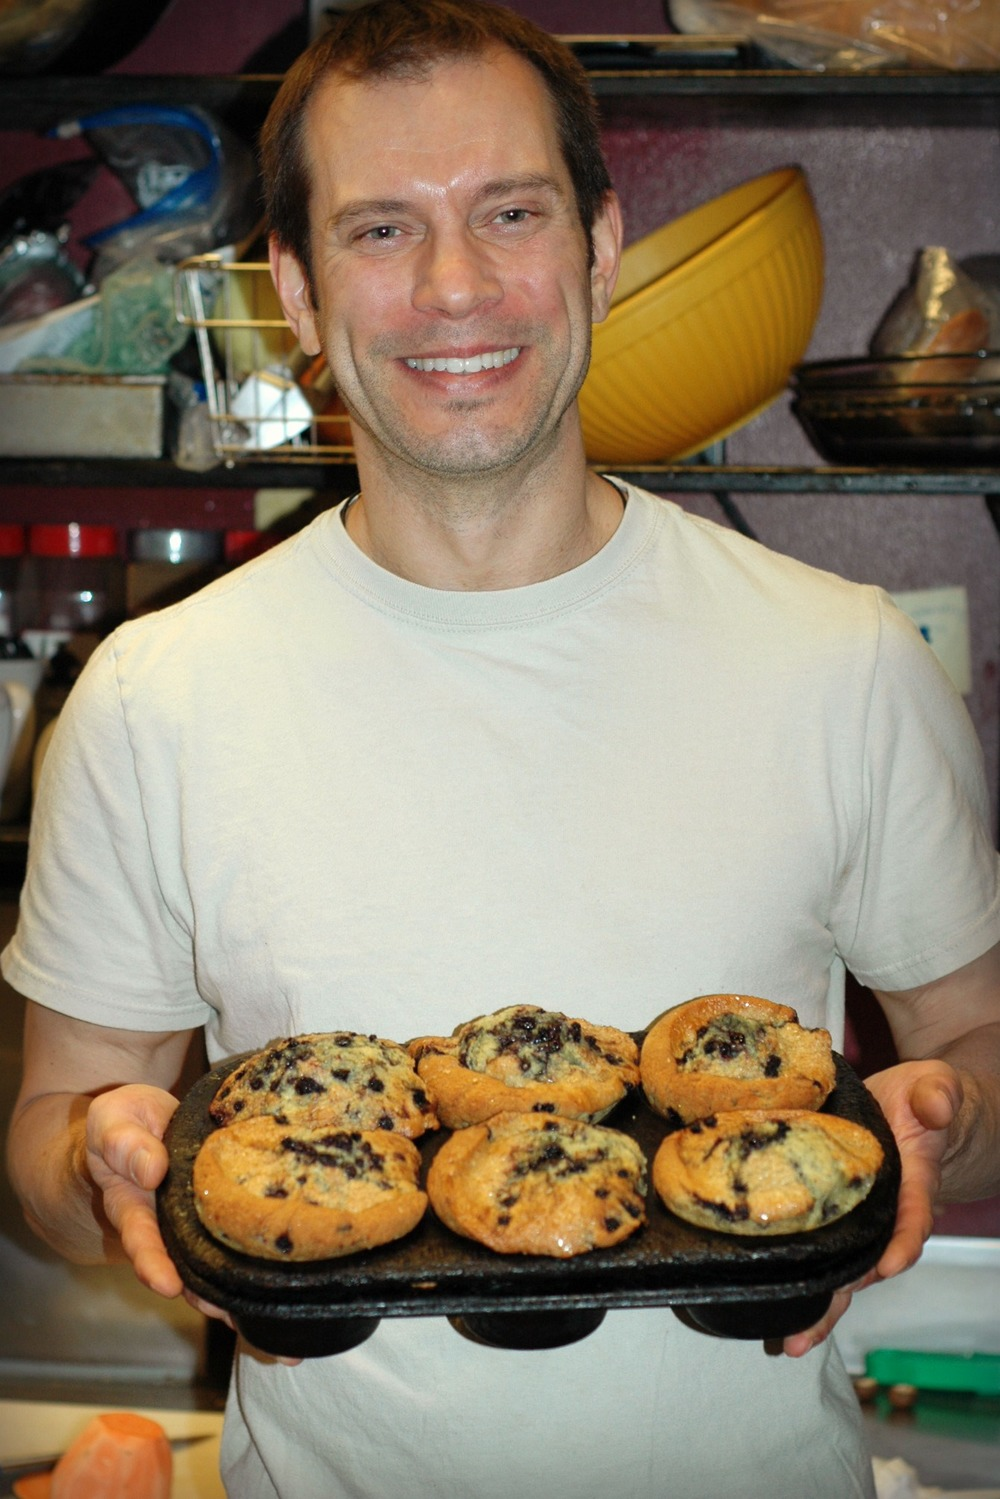 mark with muffins.jpg